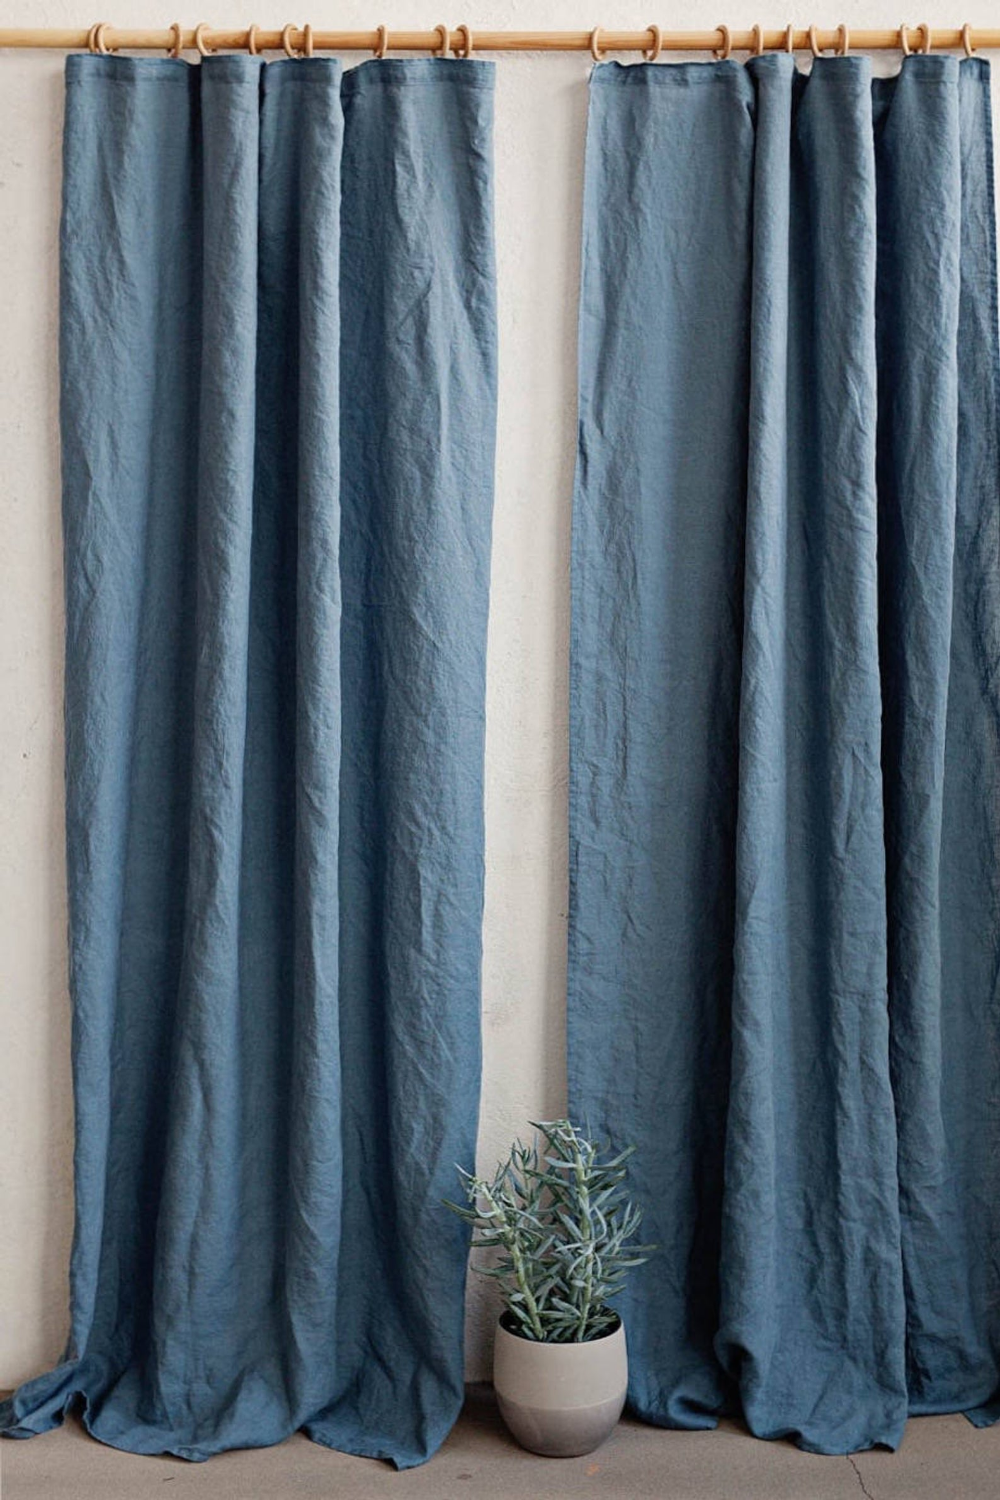 Pencil Pleat Linen Curtain Panel Washed Linen Curtains With Header Tape Custom Hook Drapes With Images Linen Curtains Panel Curtains Linen Curtain Panels